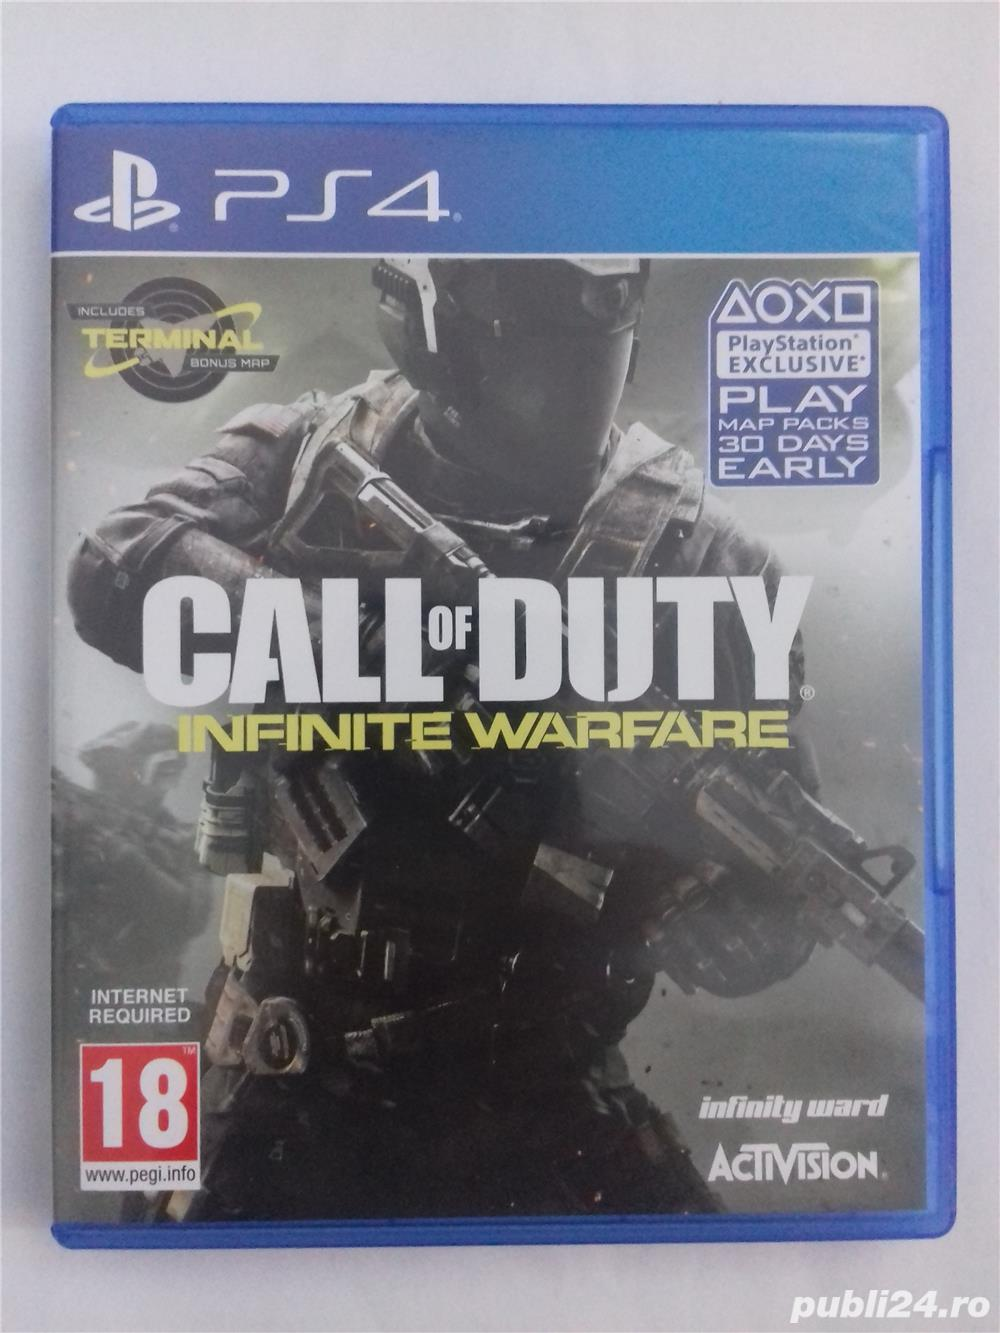 Vand joc Call of Duty Infinite Warfare Playstation 4 PS4